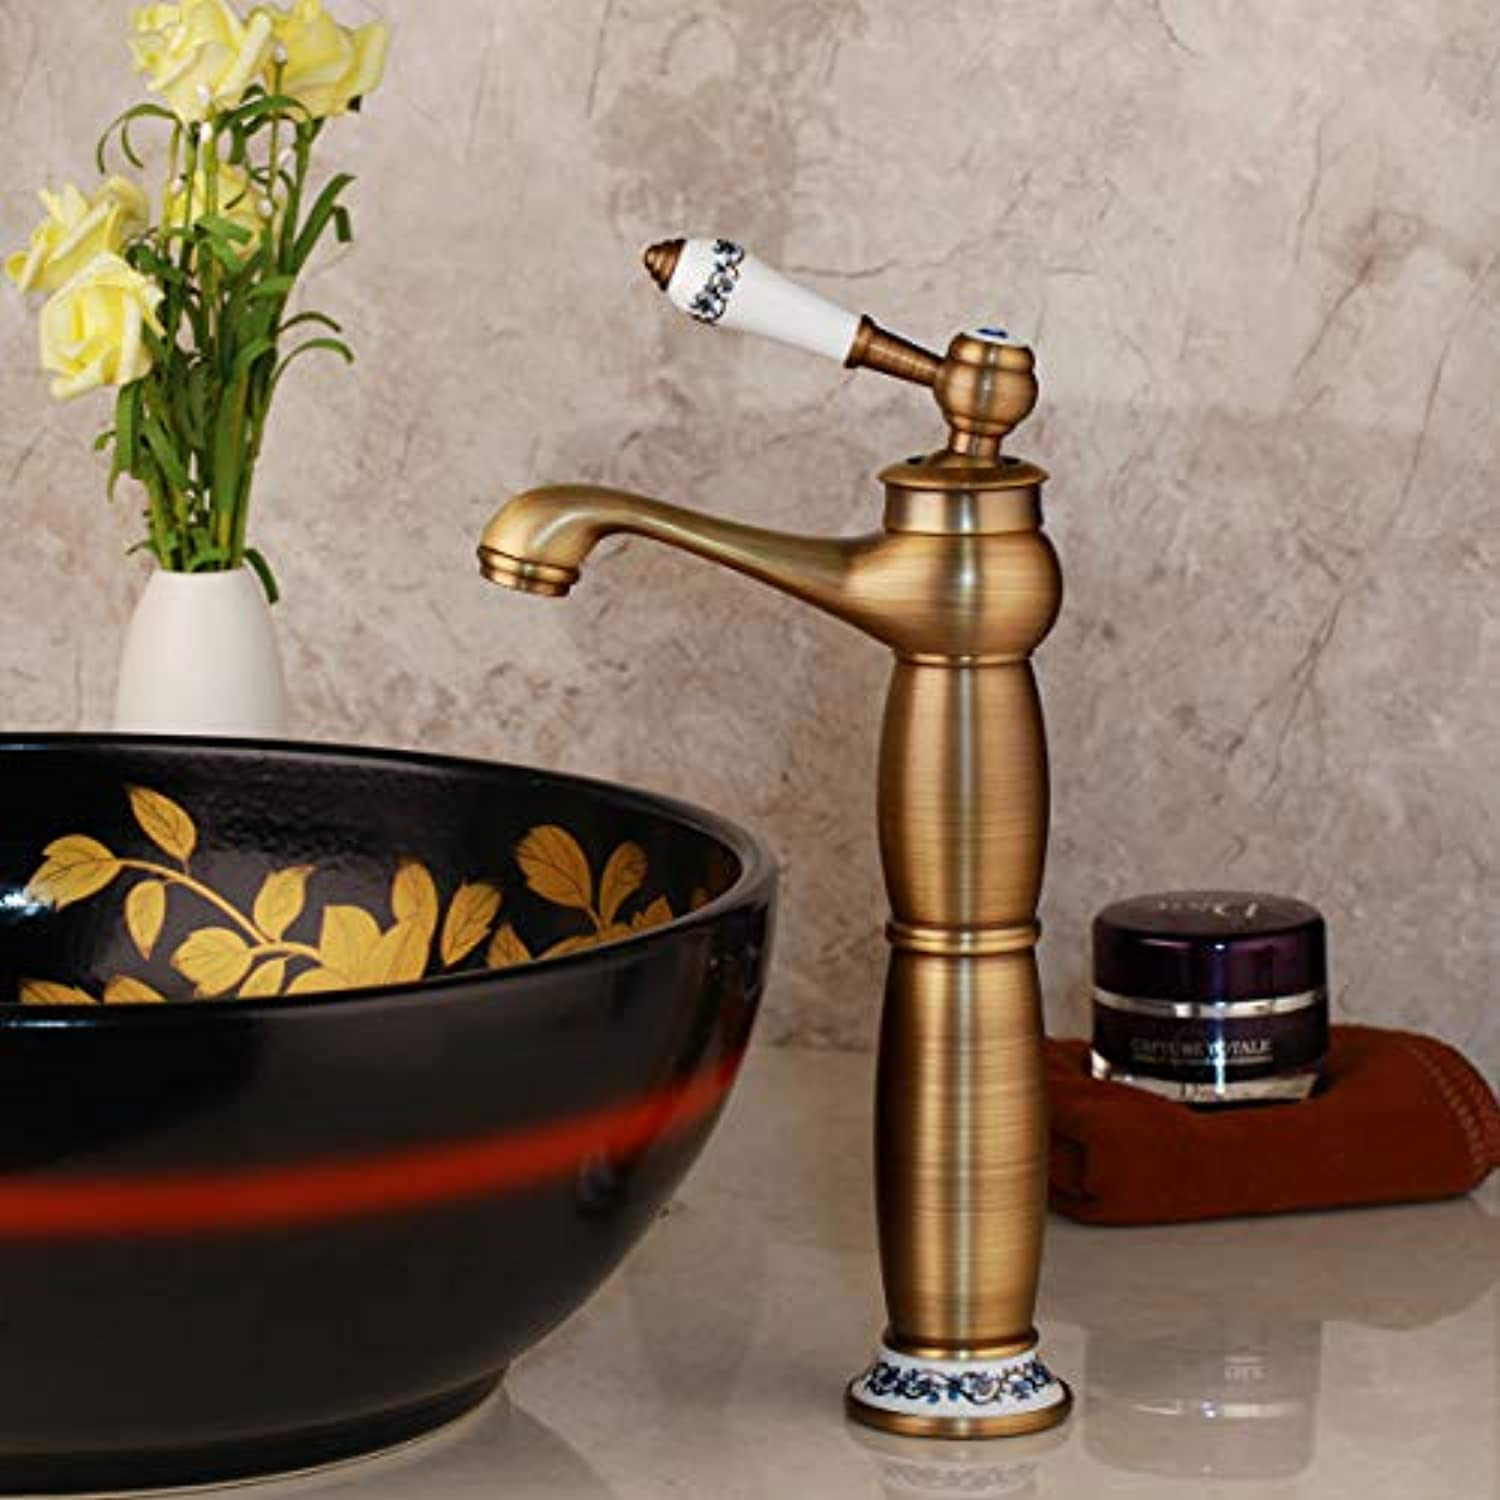 Bad Wasserhahn Tall Antique Basin Mixer Bad Faucets Single Handle Single Hole Cold & Hot Water Tap Antike Messinglange